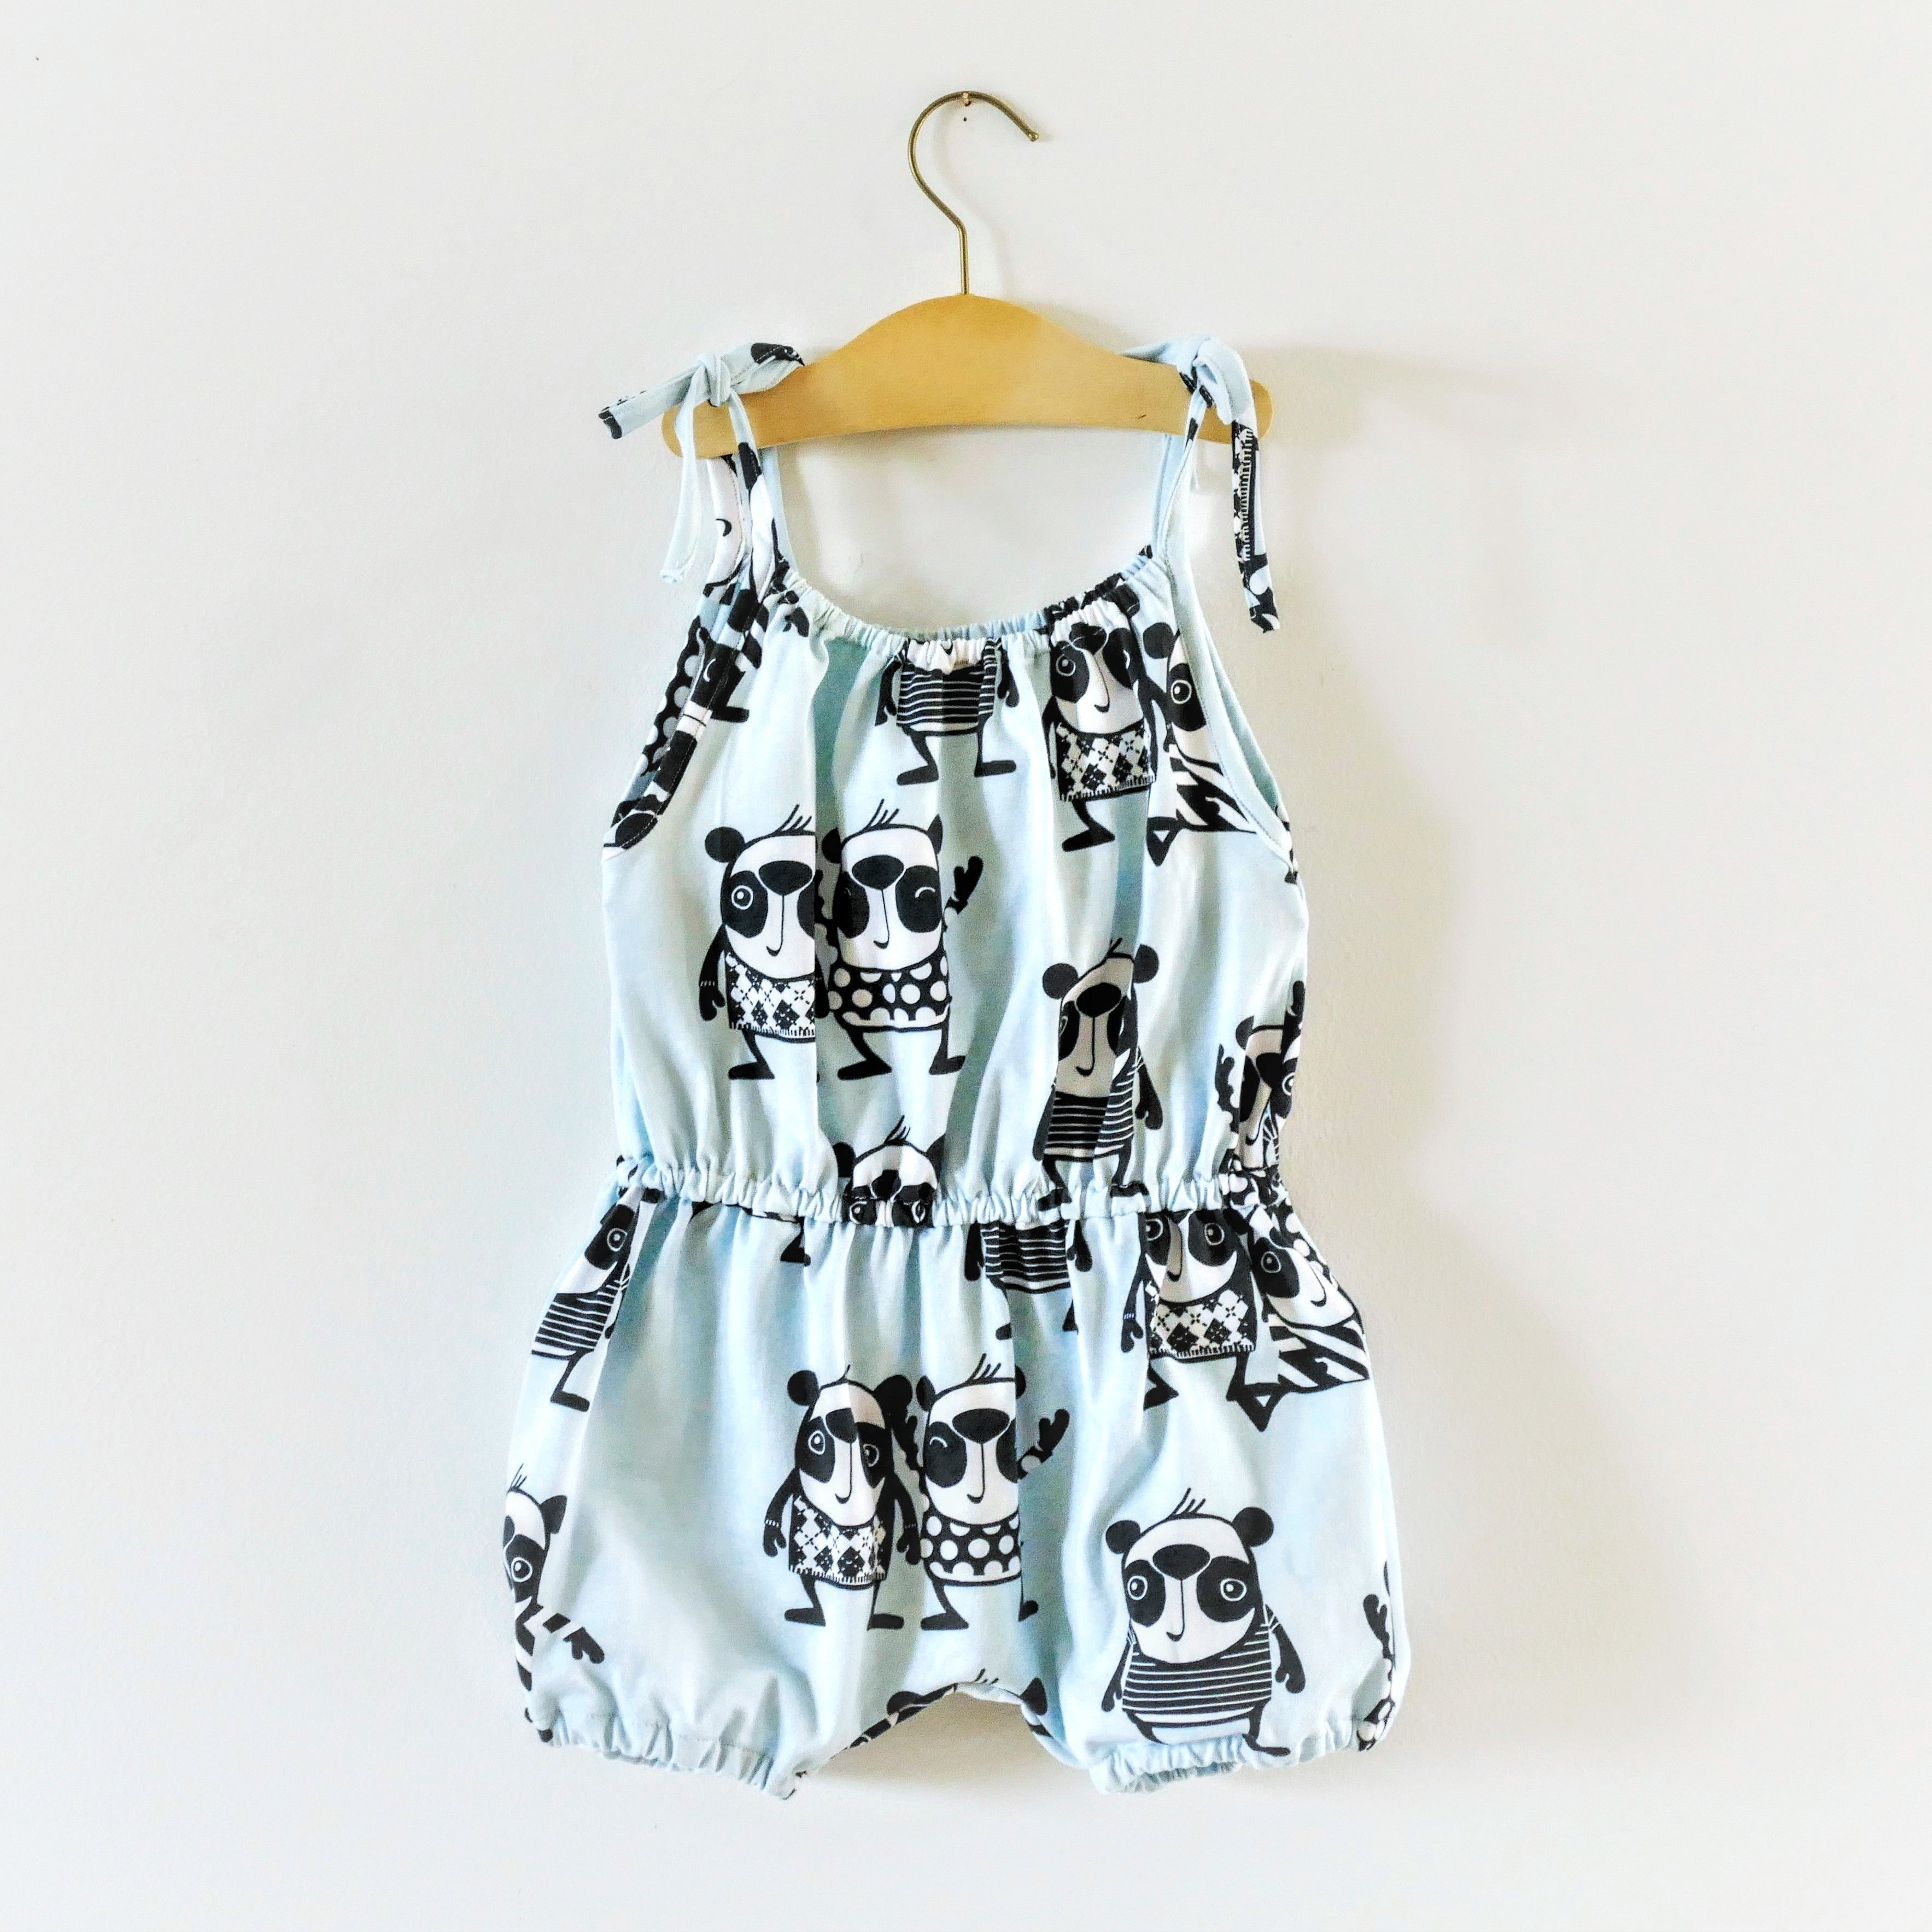 Bloomer romper digital sewing pattern for babies and kids | Patterns ...